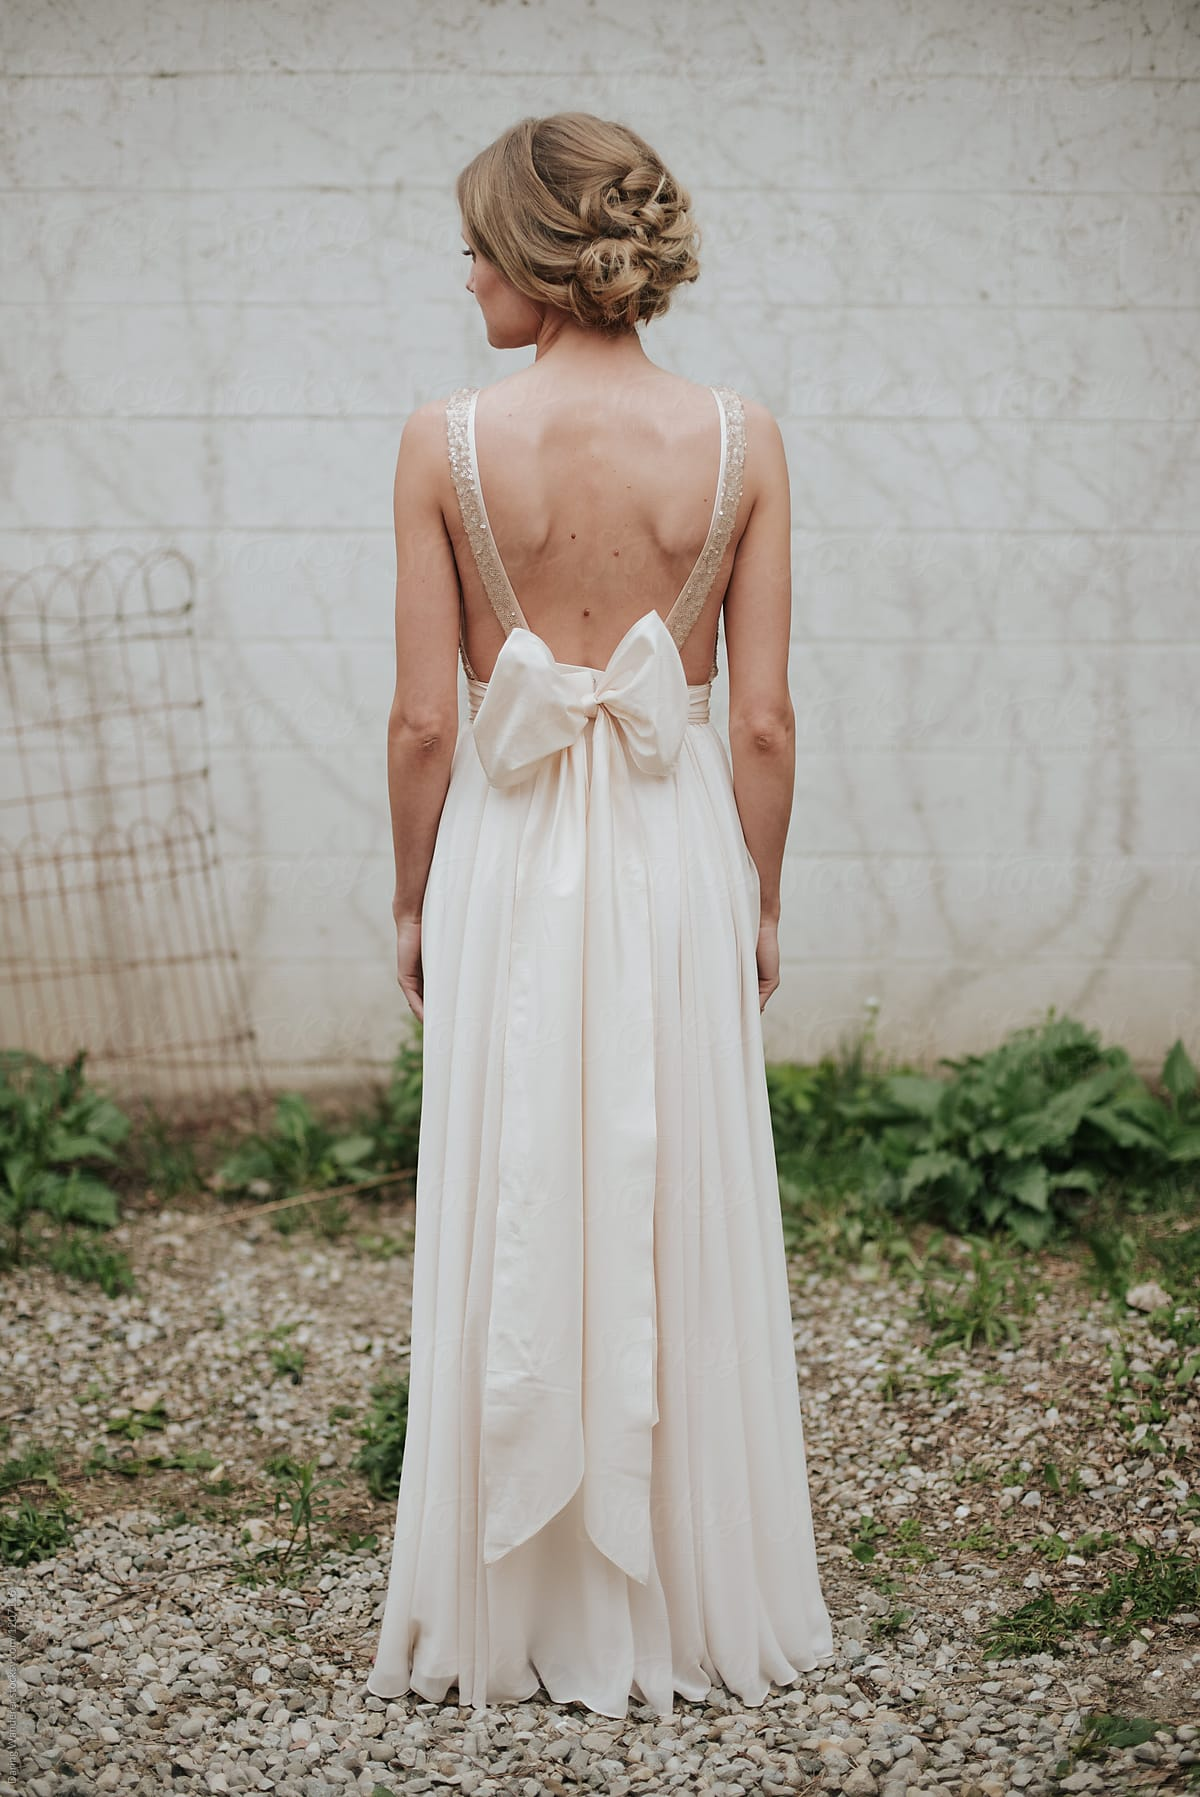 Delicate petite bride in simple minimalist wedding dress with large bow  sash by Jess Craven for Stocksy United